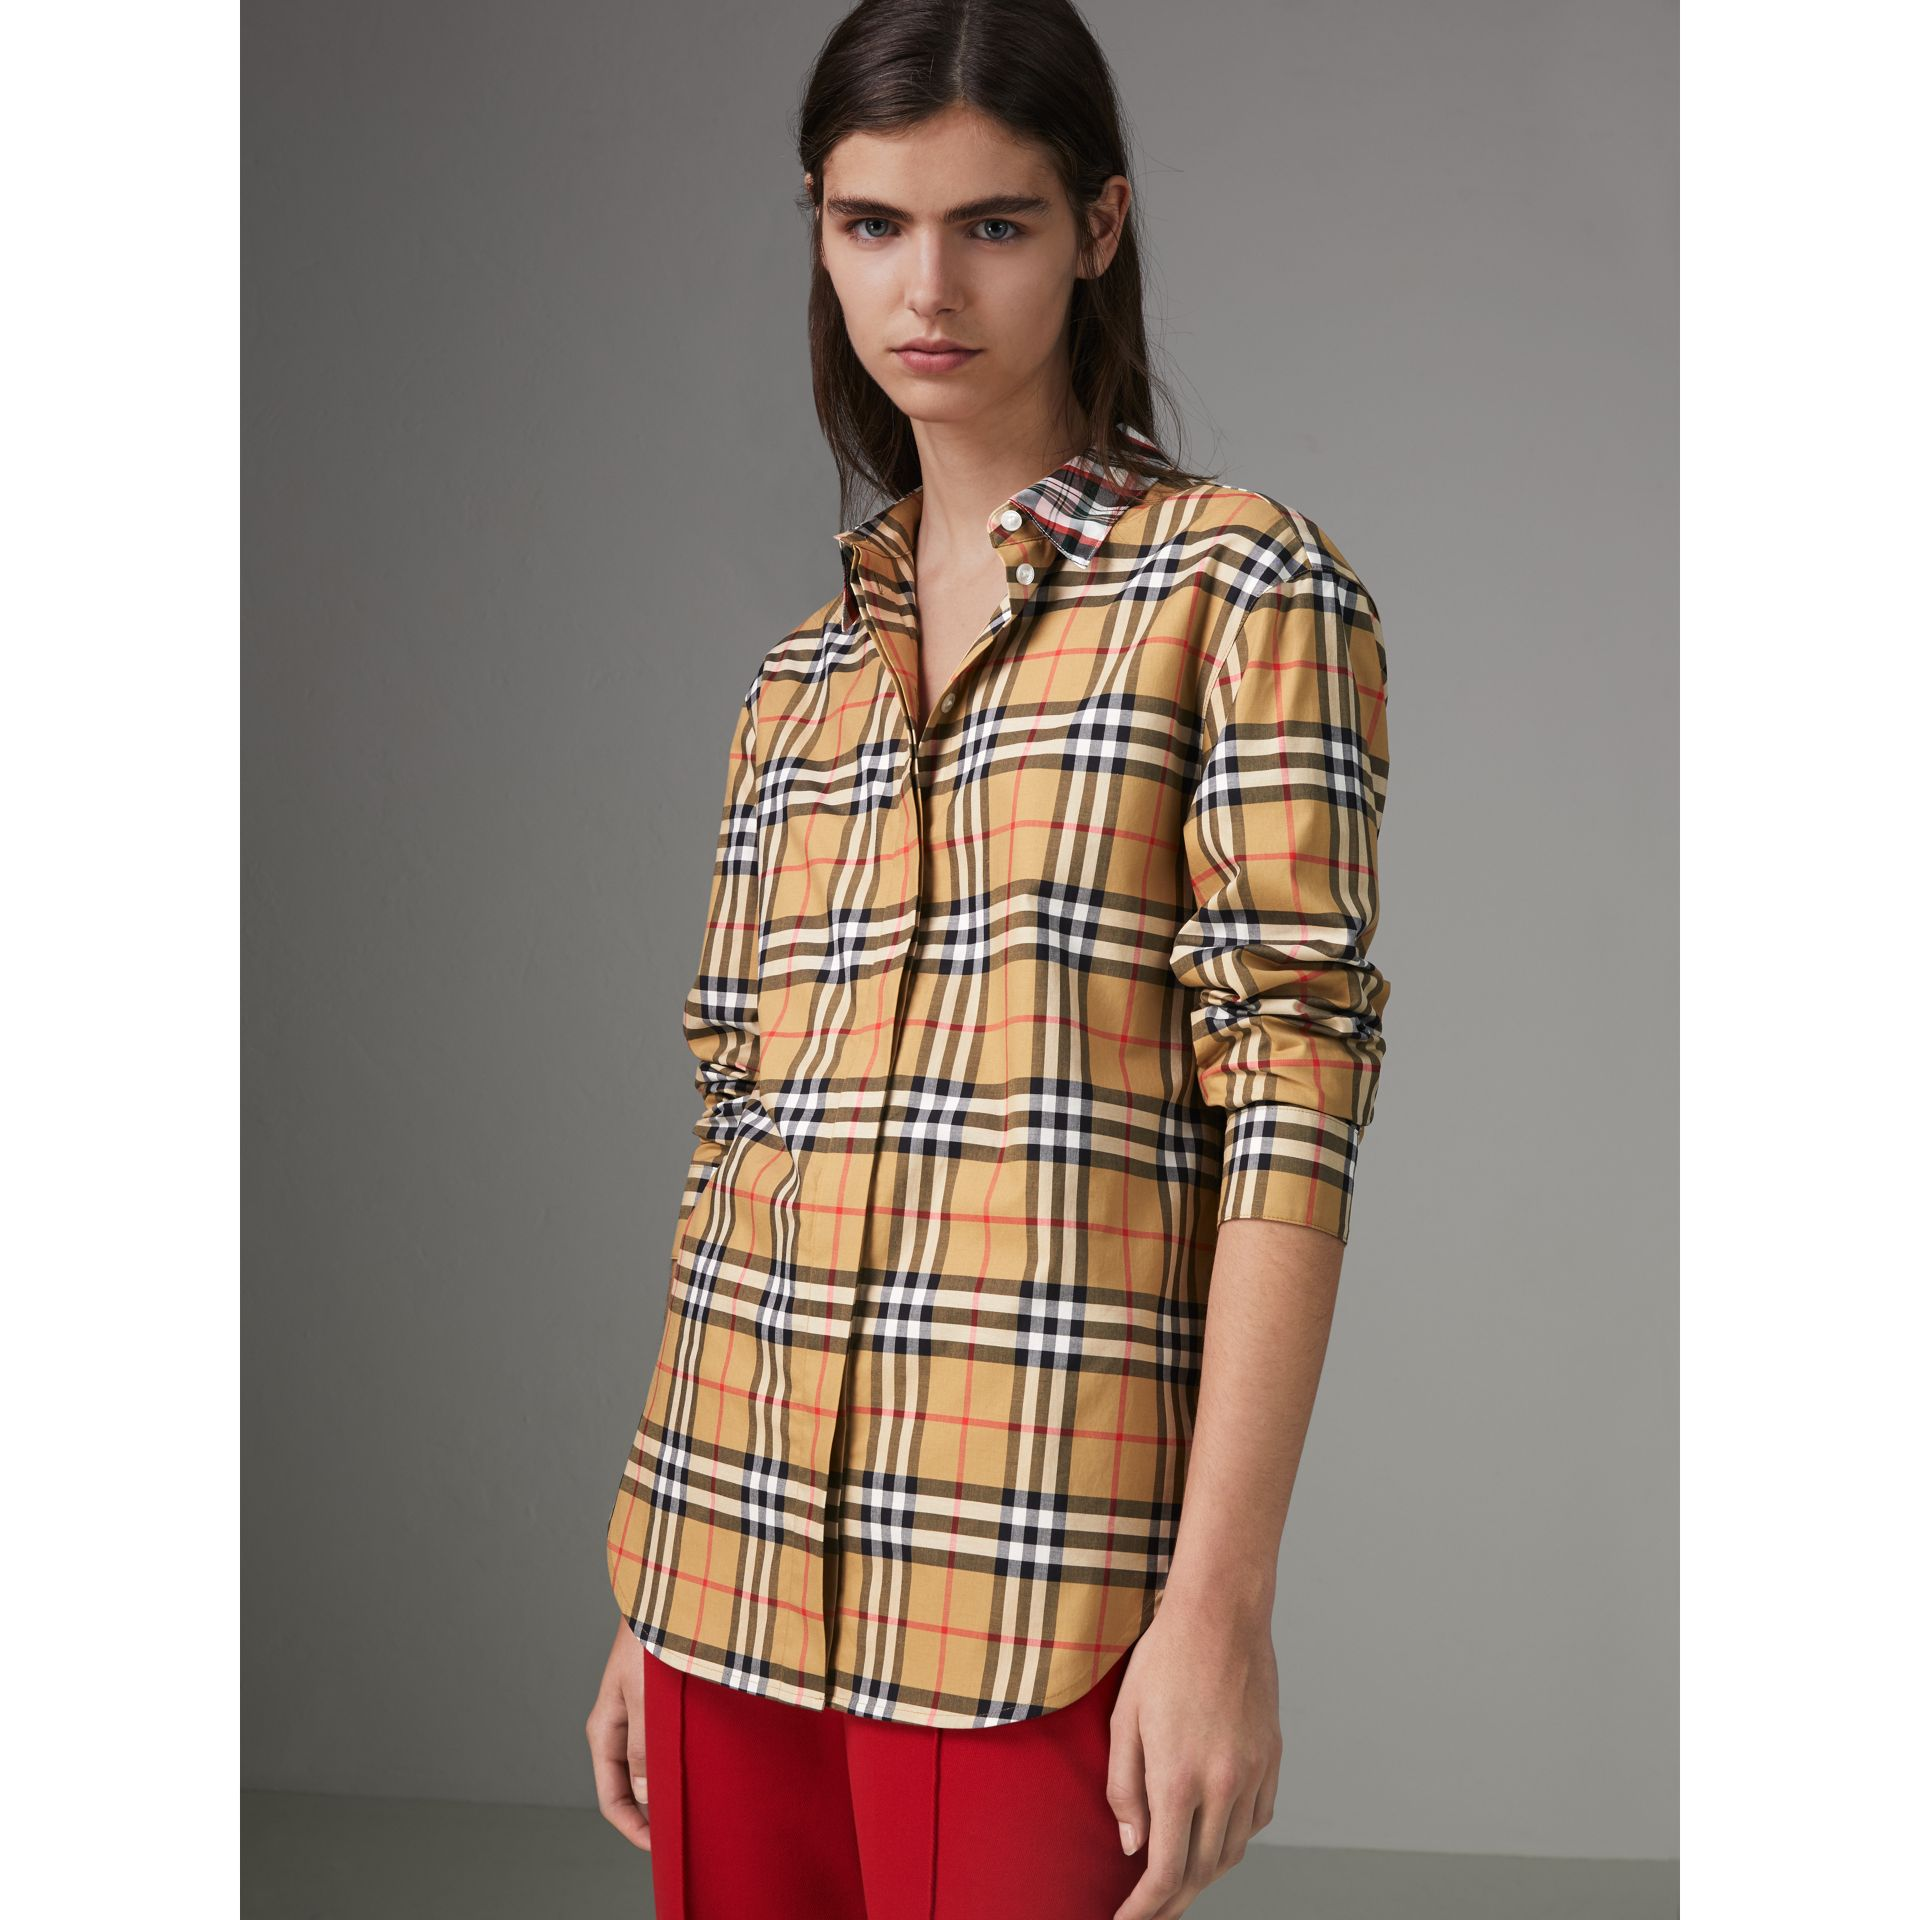 Contrast Check Cotton Shirt in Antique Yellow - Women | Burberry Hong Kong - gallery image 4